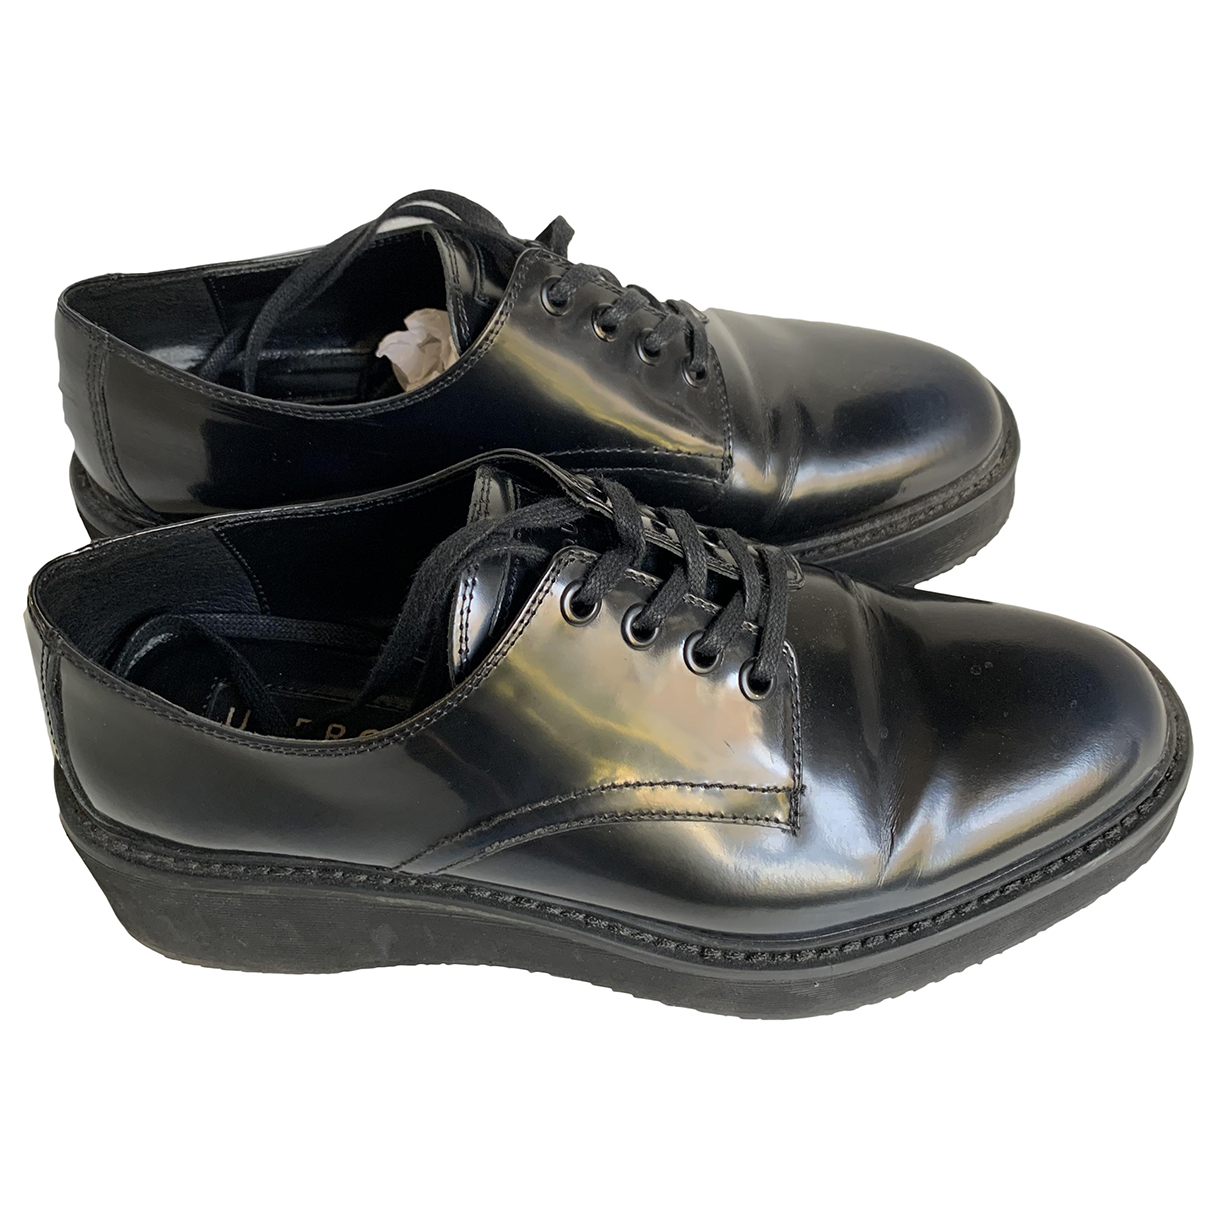 Uterque N Navy Leather Lace ups for Women 39 EU